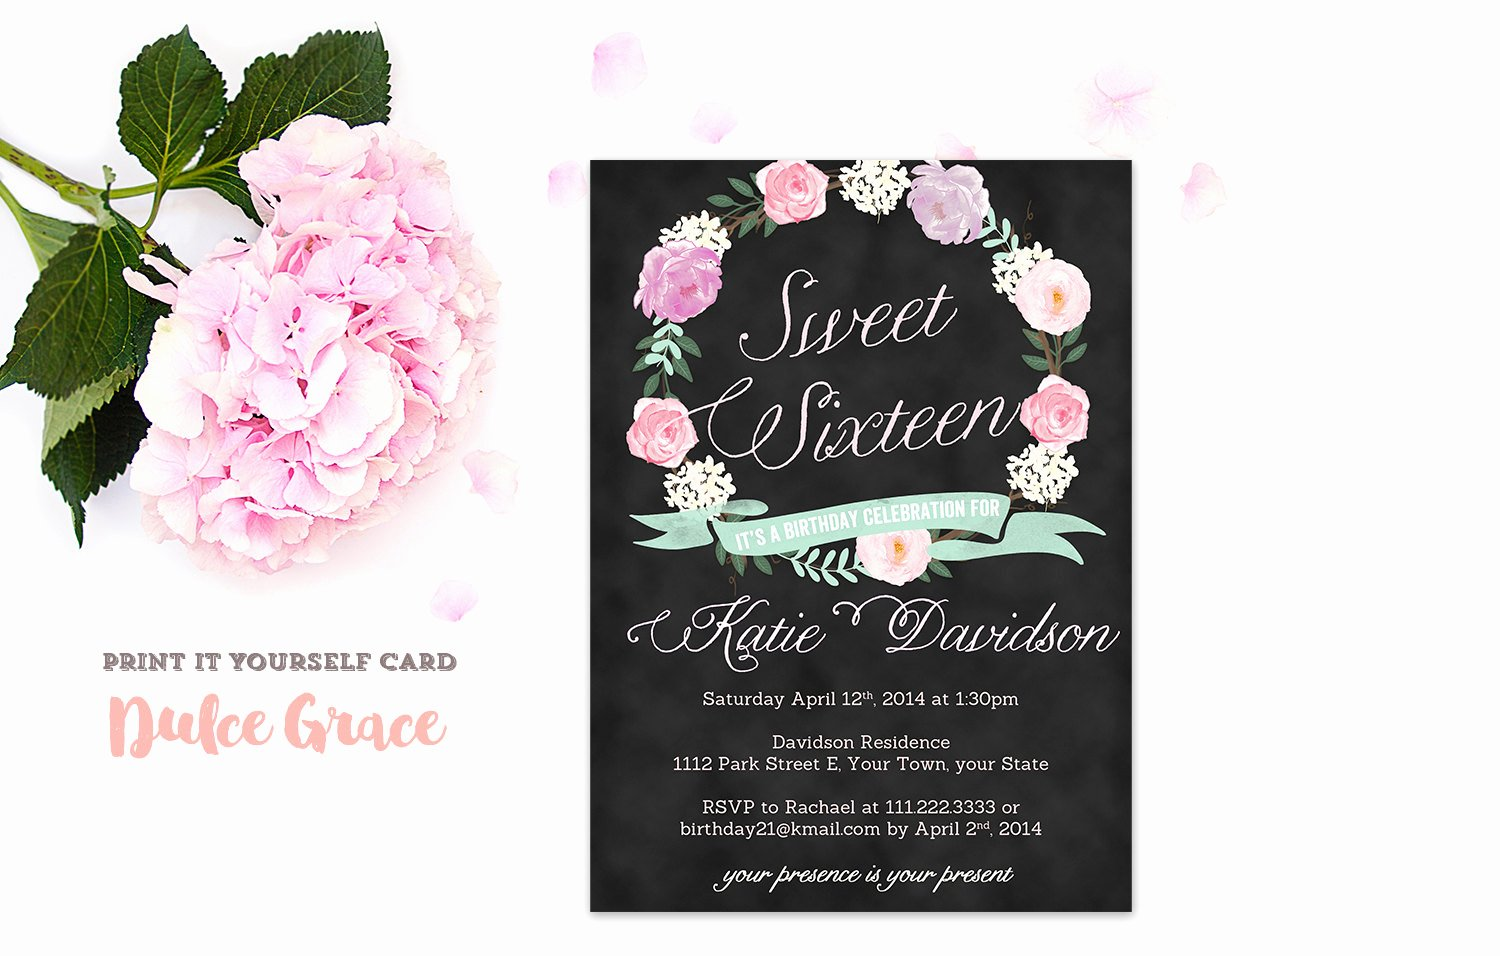 Sweet 16 Invitation Template Best Of Sweet Sixteen Invitations Sweet 16 Invitation Printable